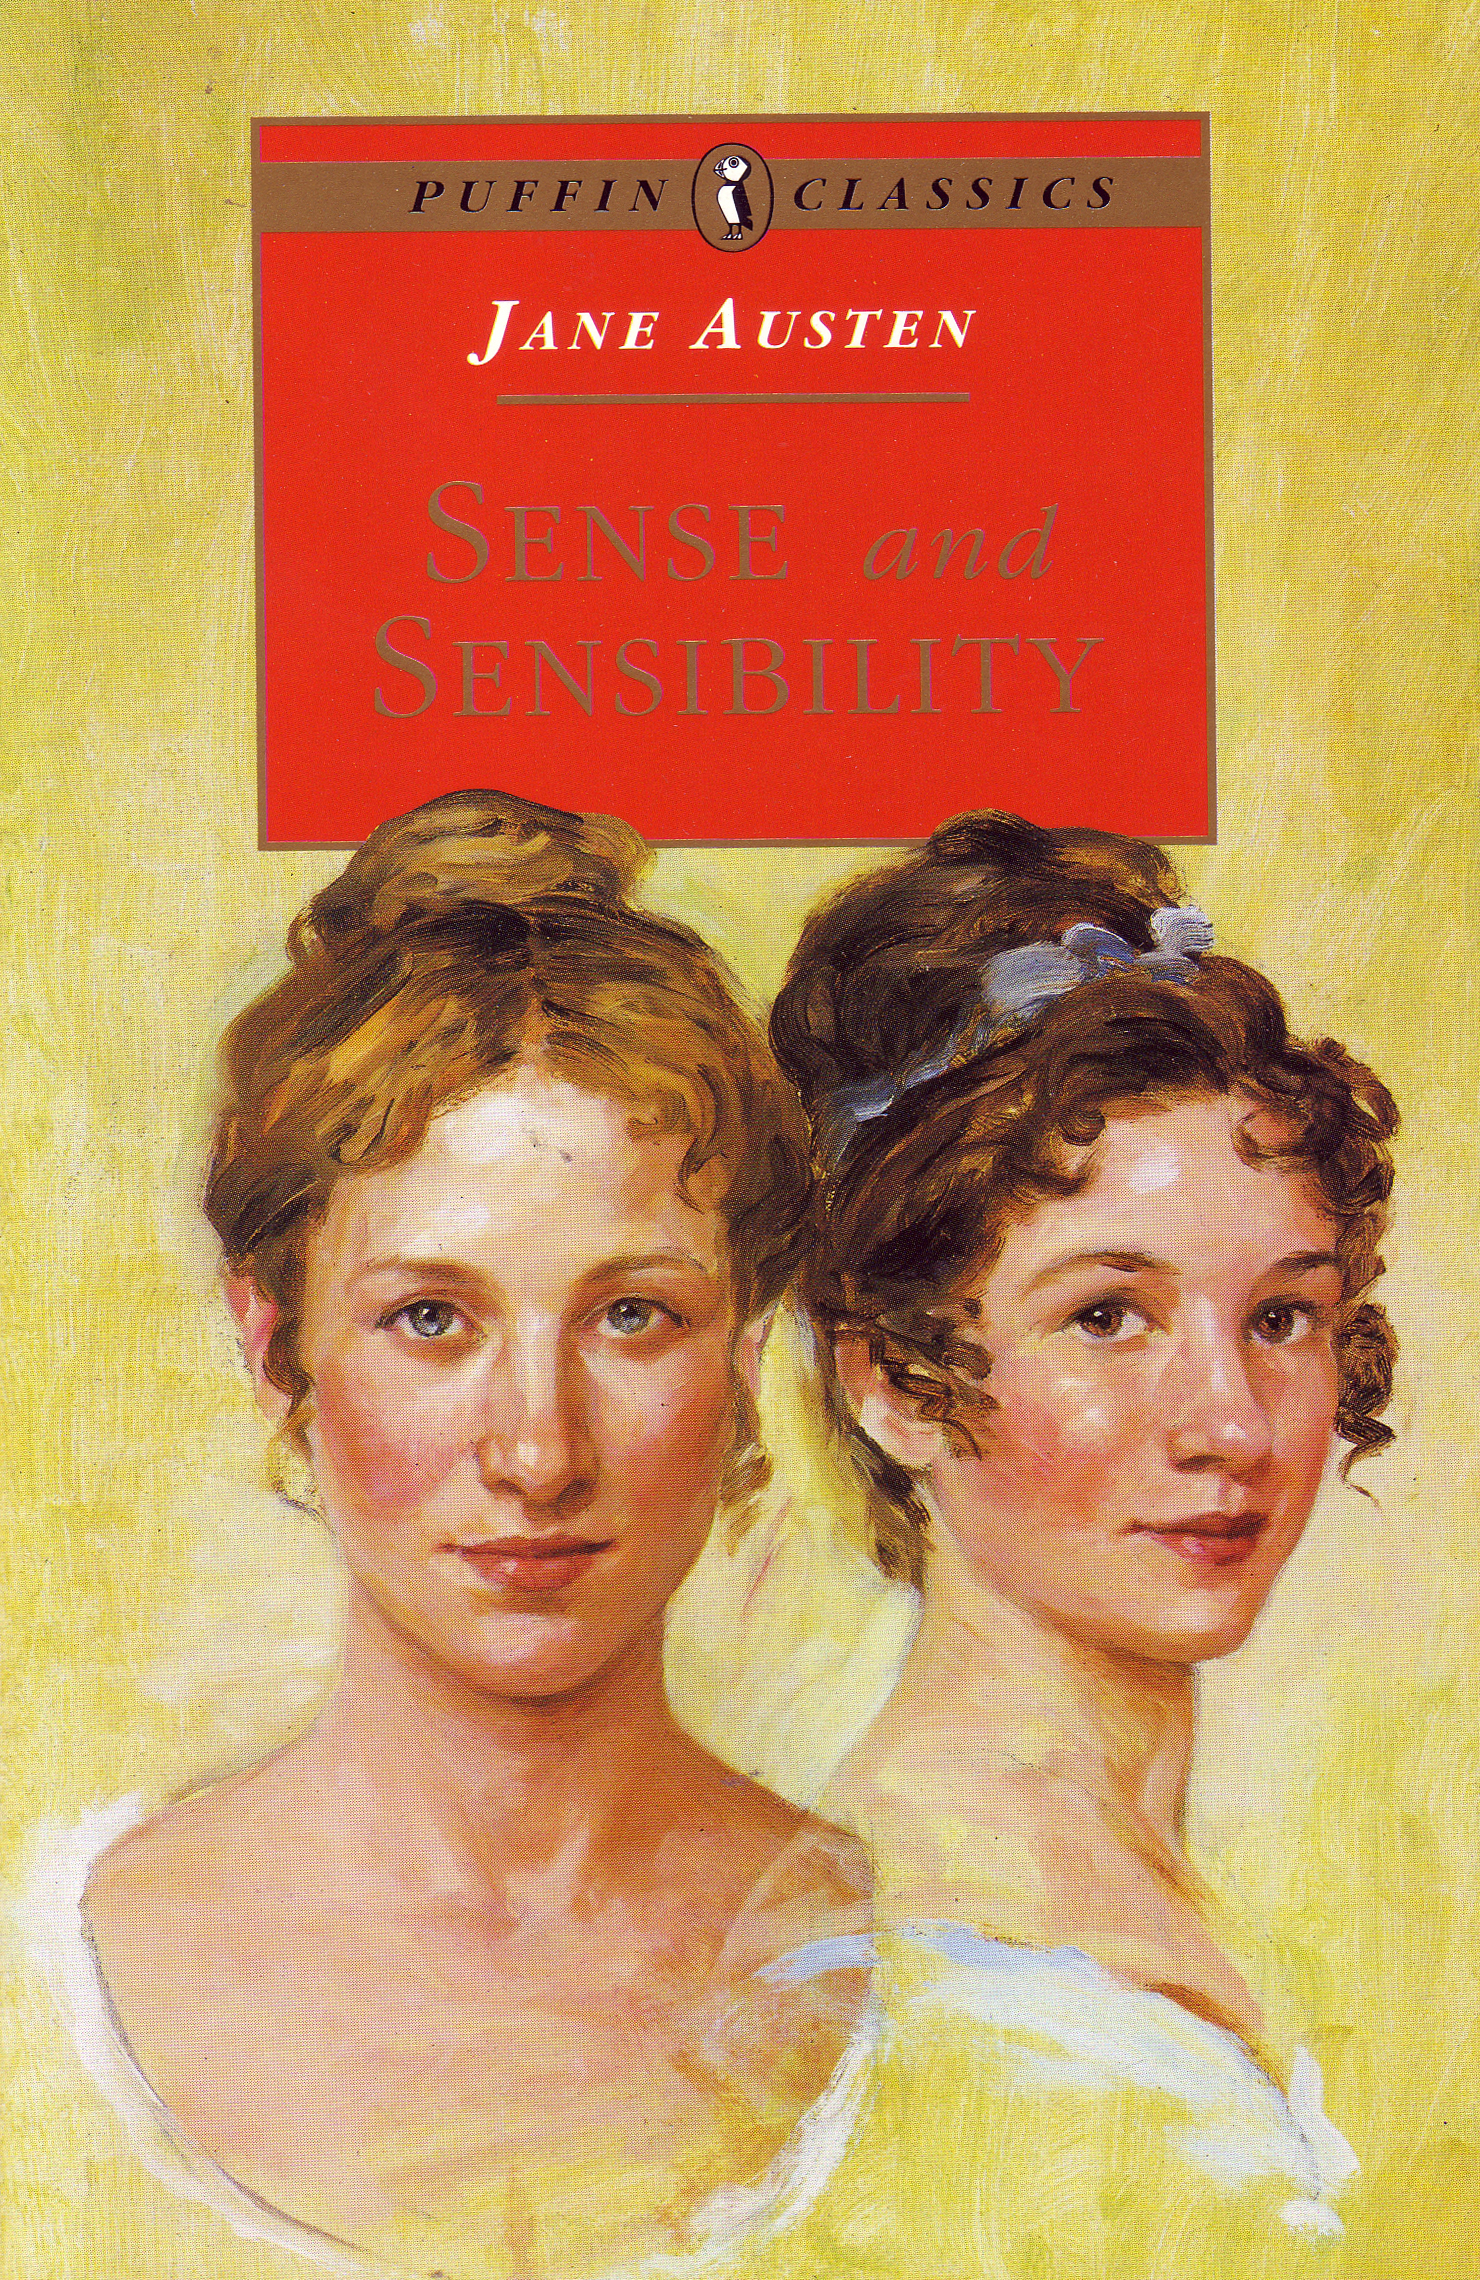 sense and sensibility book review Find helpful customer reviews and review ratings for sense and sensibility at amazoncom read honest and unbiased product reviews from our users.